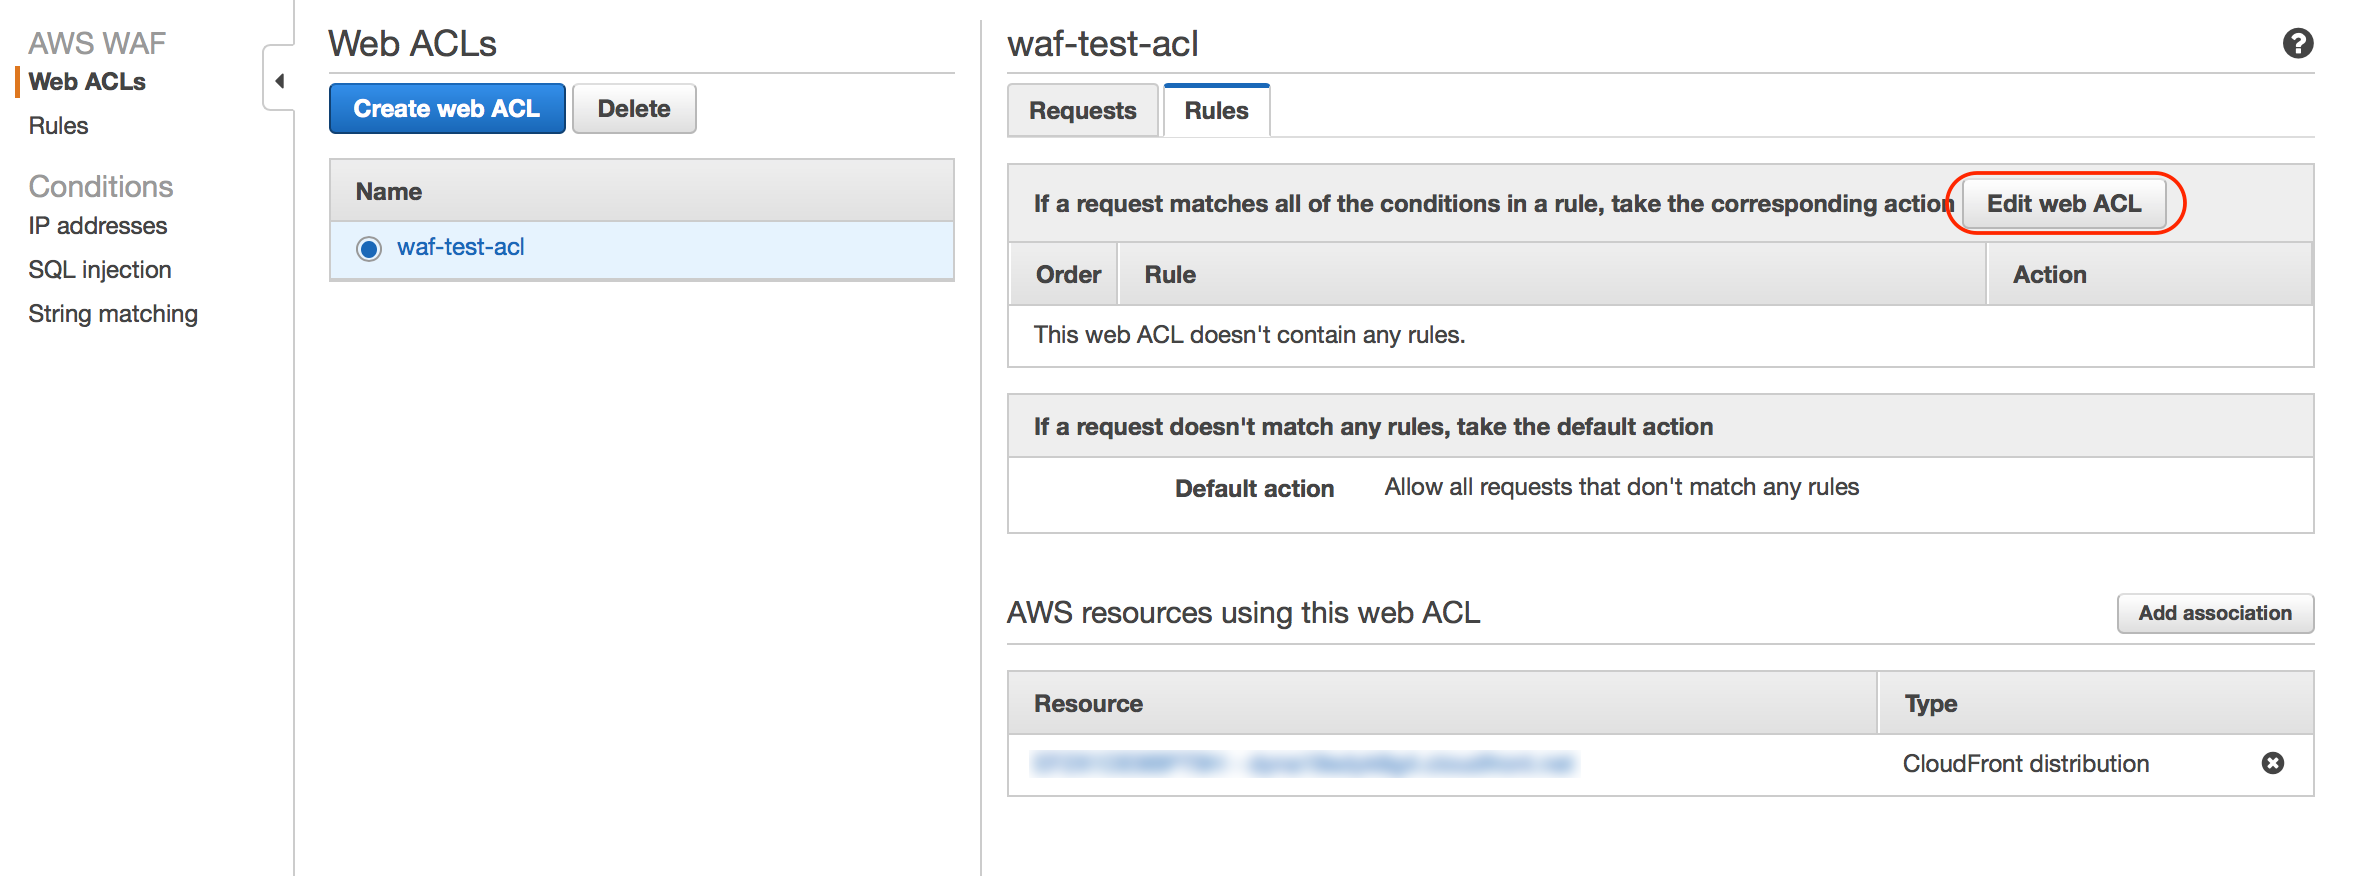 aws-waf_sql-injection_2015120410-1.png